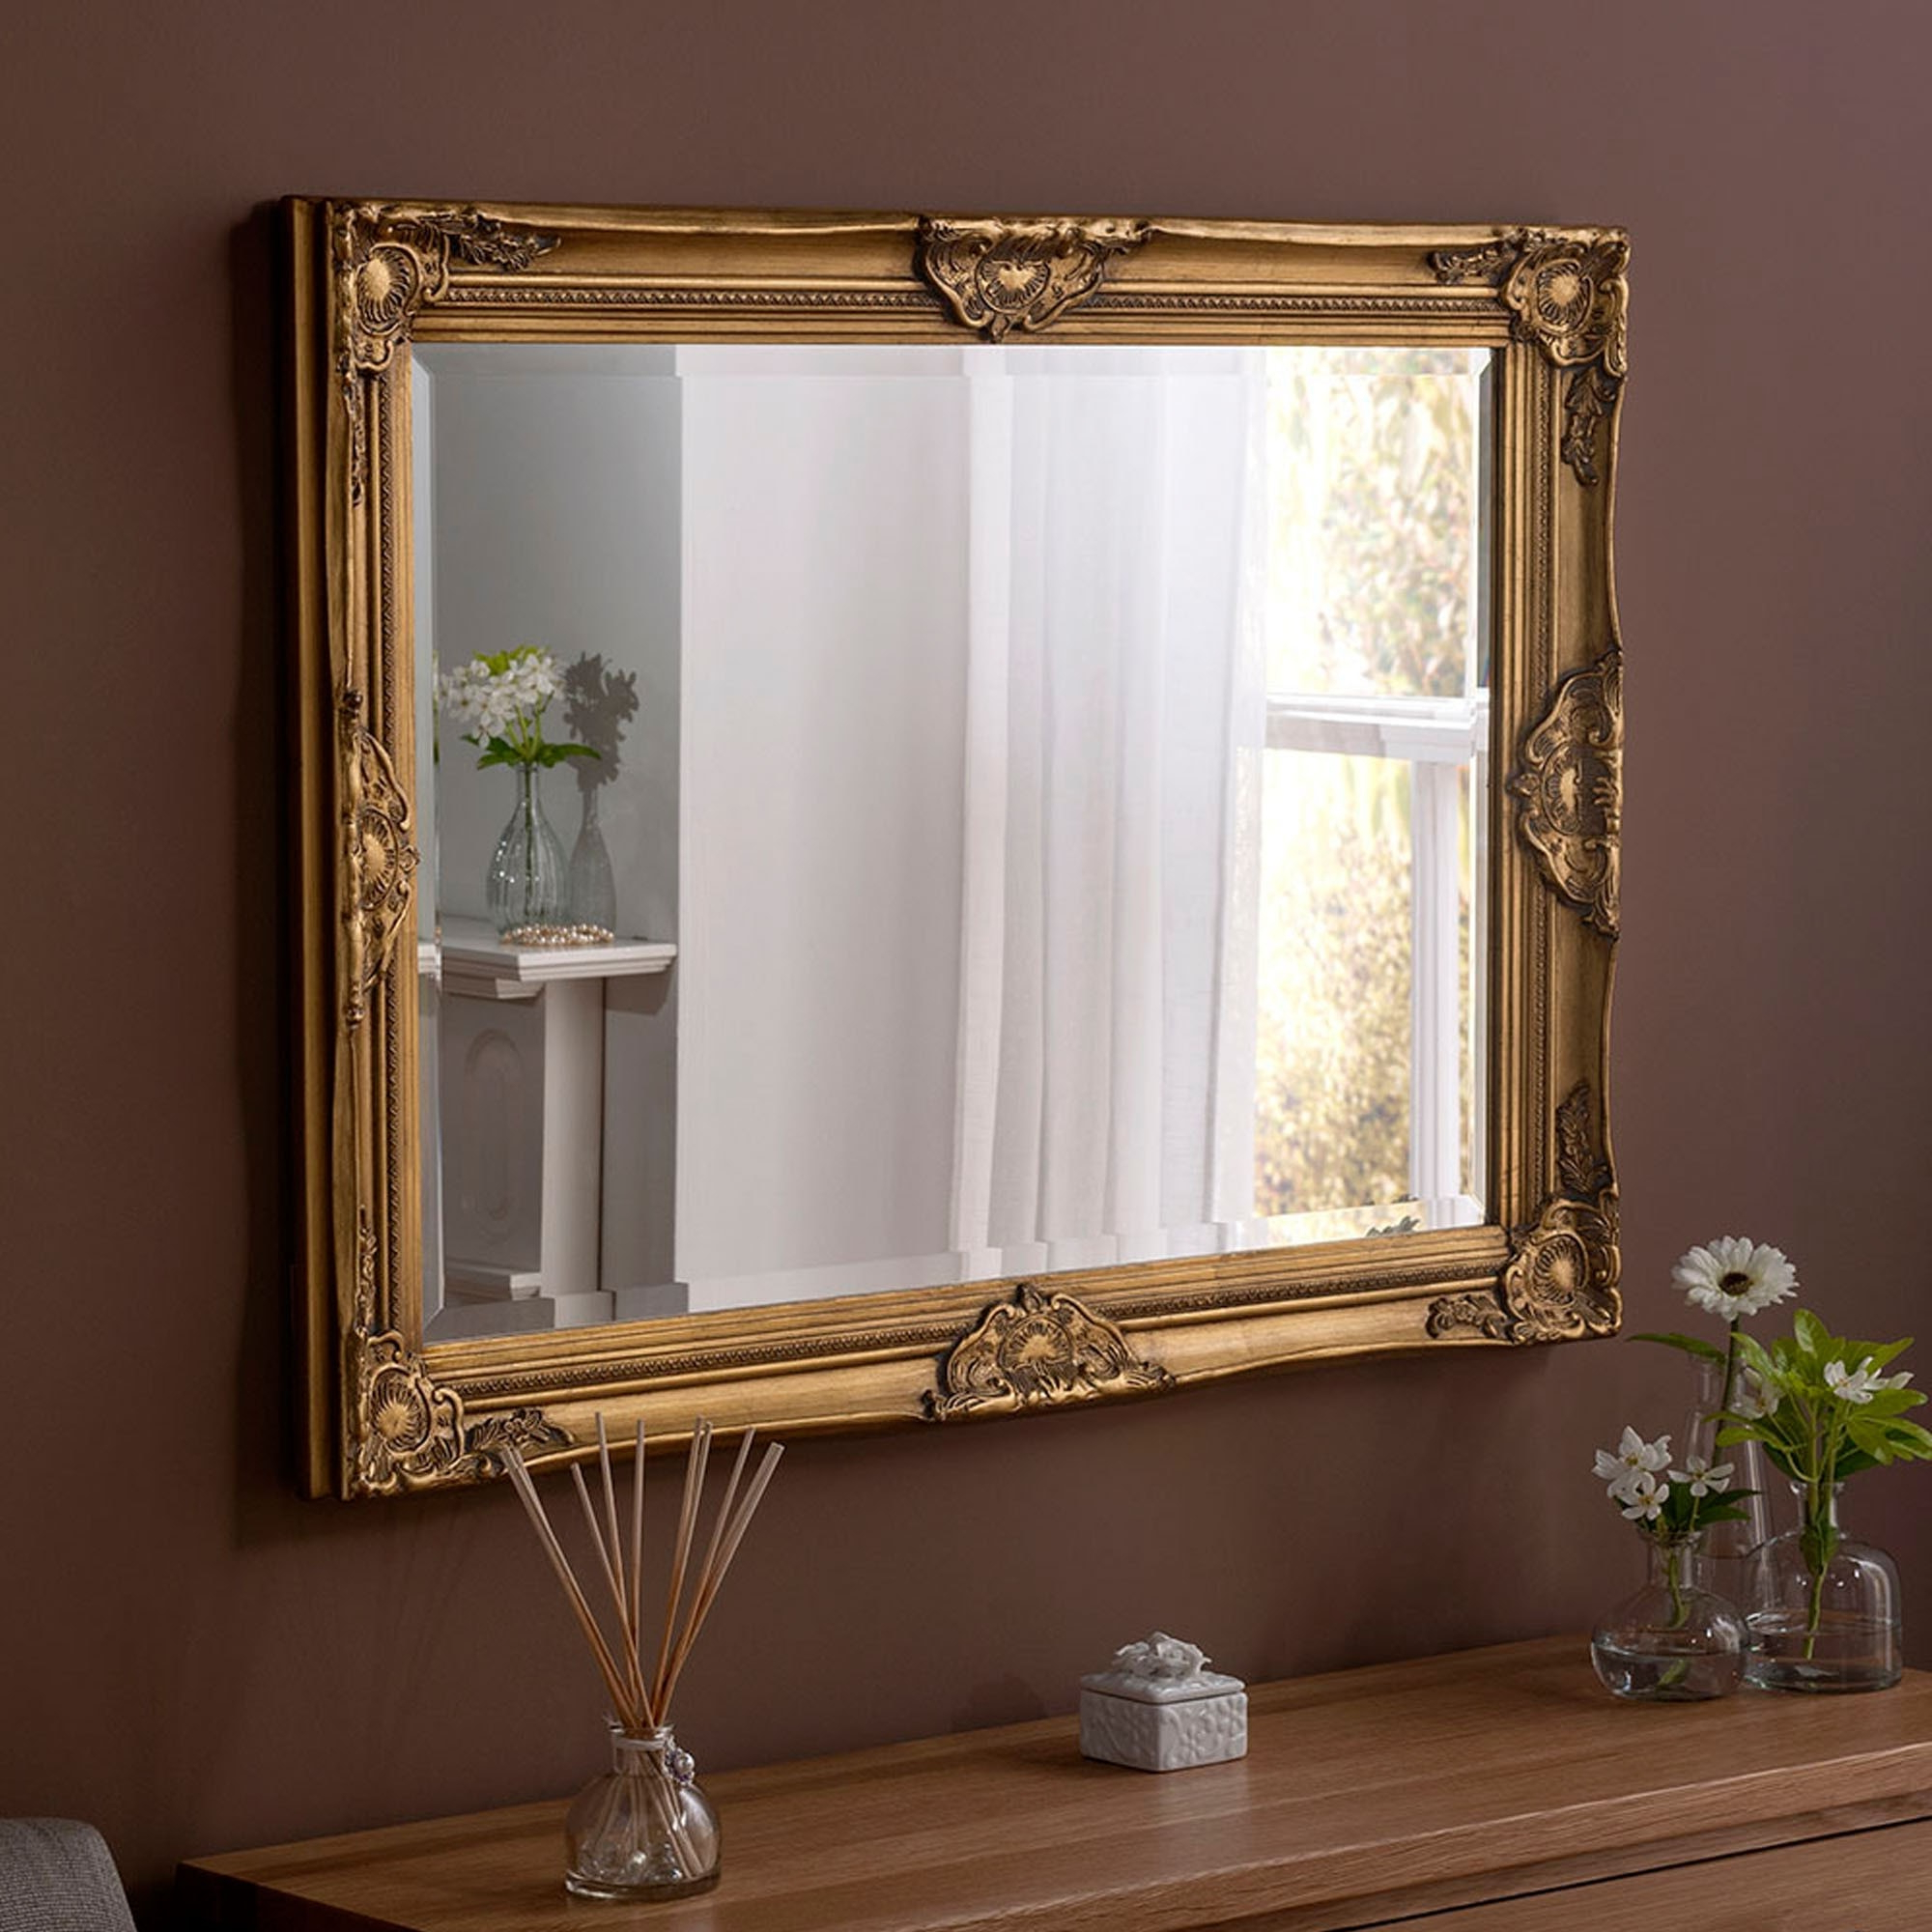 Recent Decorative Baroque Gold Wall Mirror In Decorative Wall Mirrors (View 16 of 20)